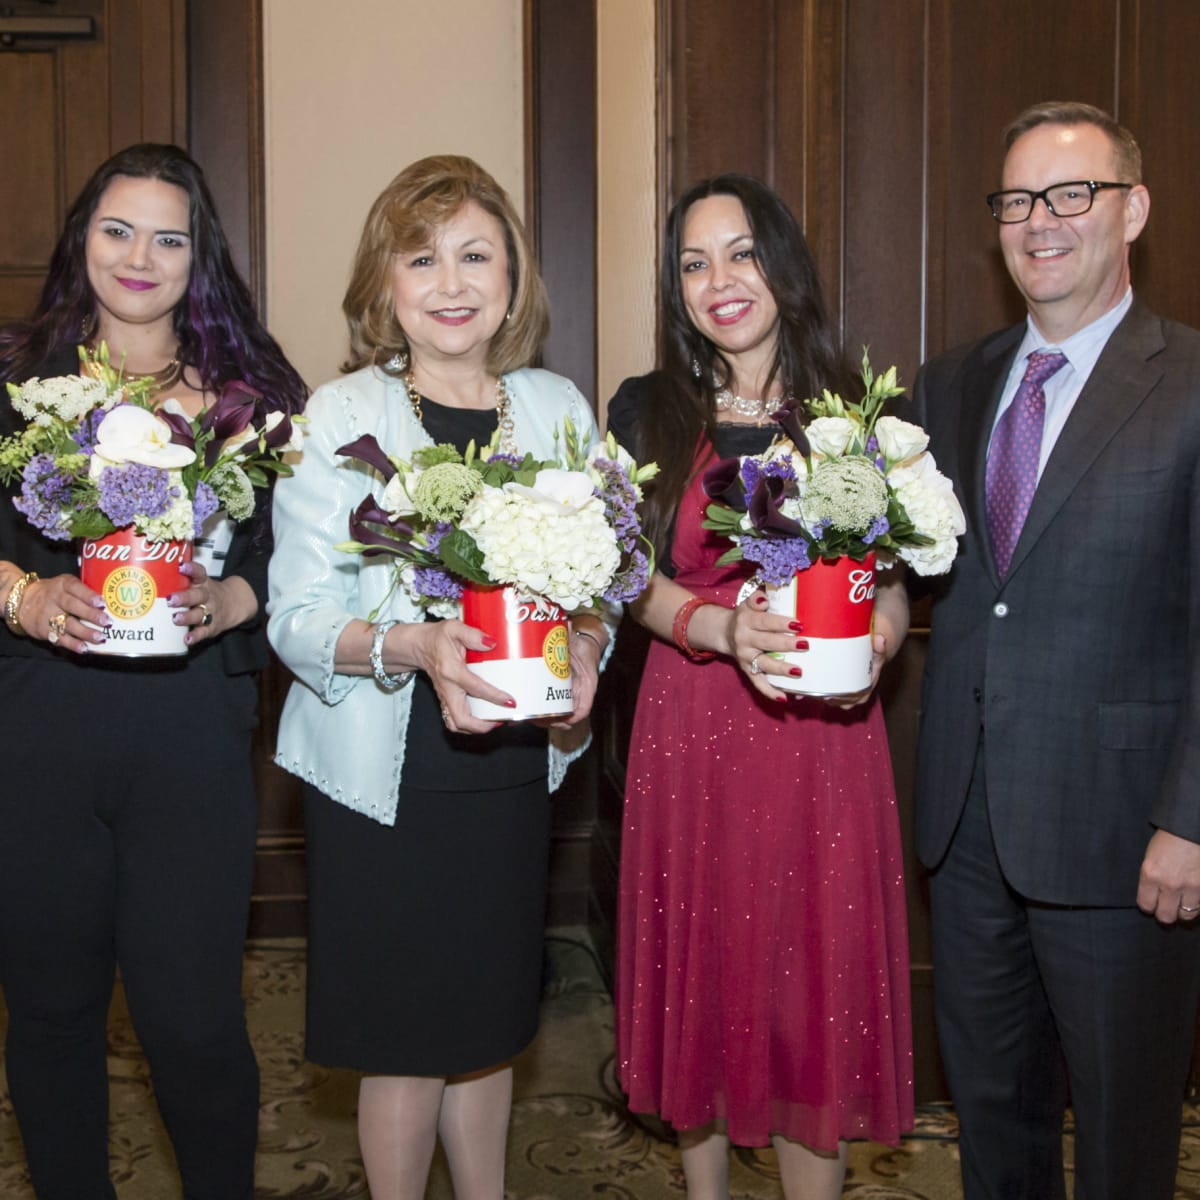 Can Do Luncheon Award Recipients (Katherine Perot Reeves- NTFB Board member, Christina Parks- Wilkinson Center client, Regina Montoya, Marilu Rodriguez- Wilkinson Center client, Brett Gray-NTFB